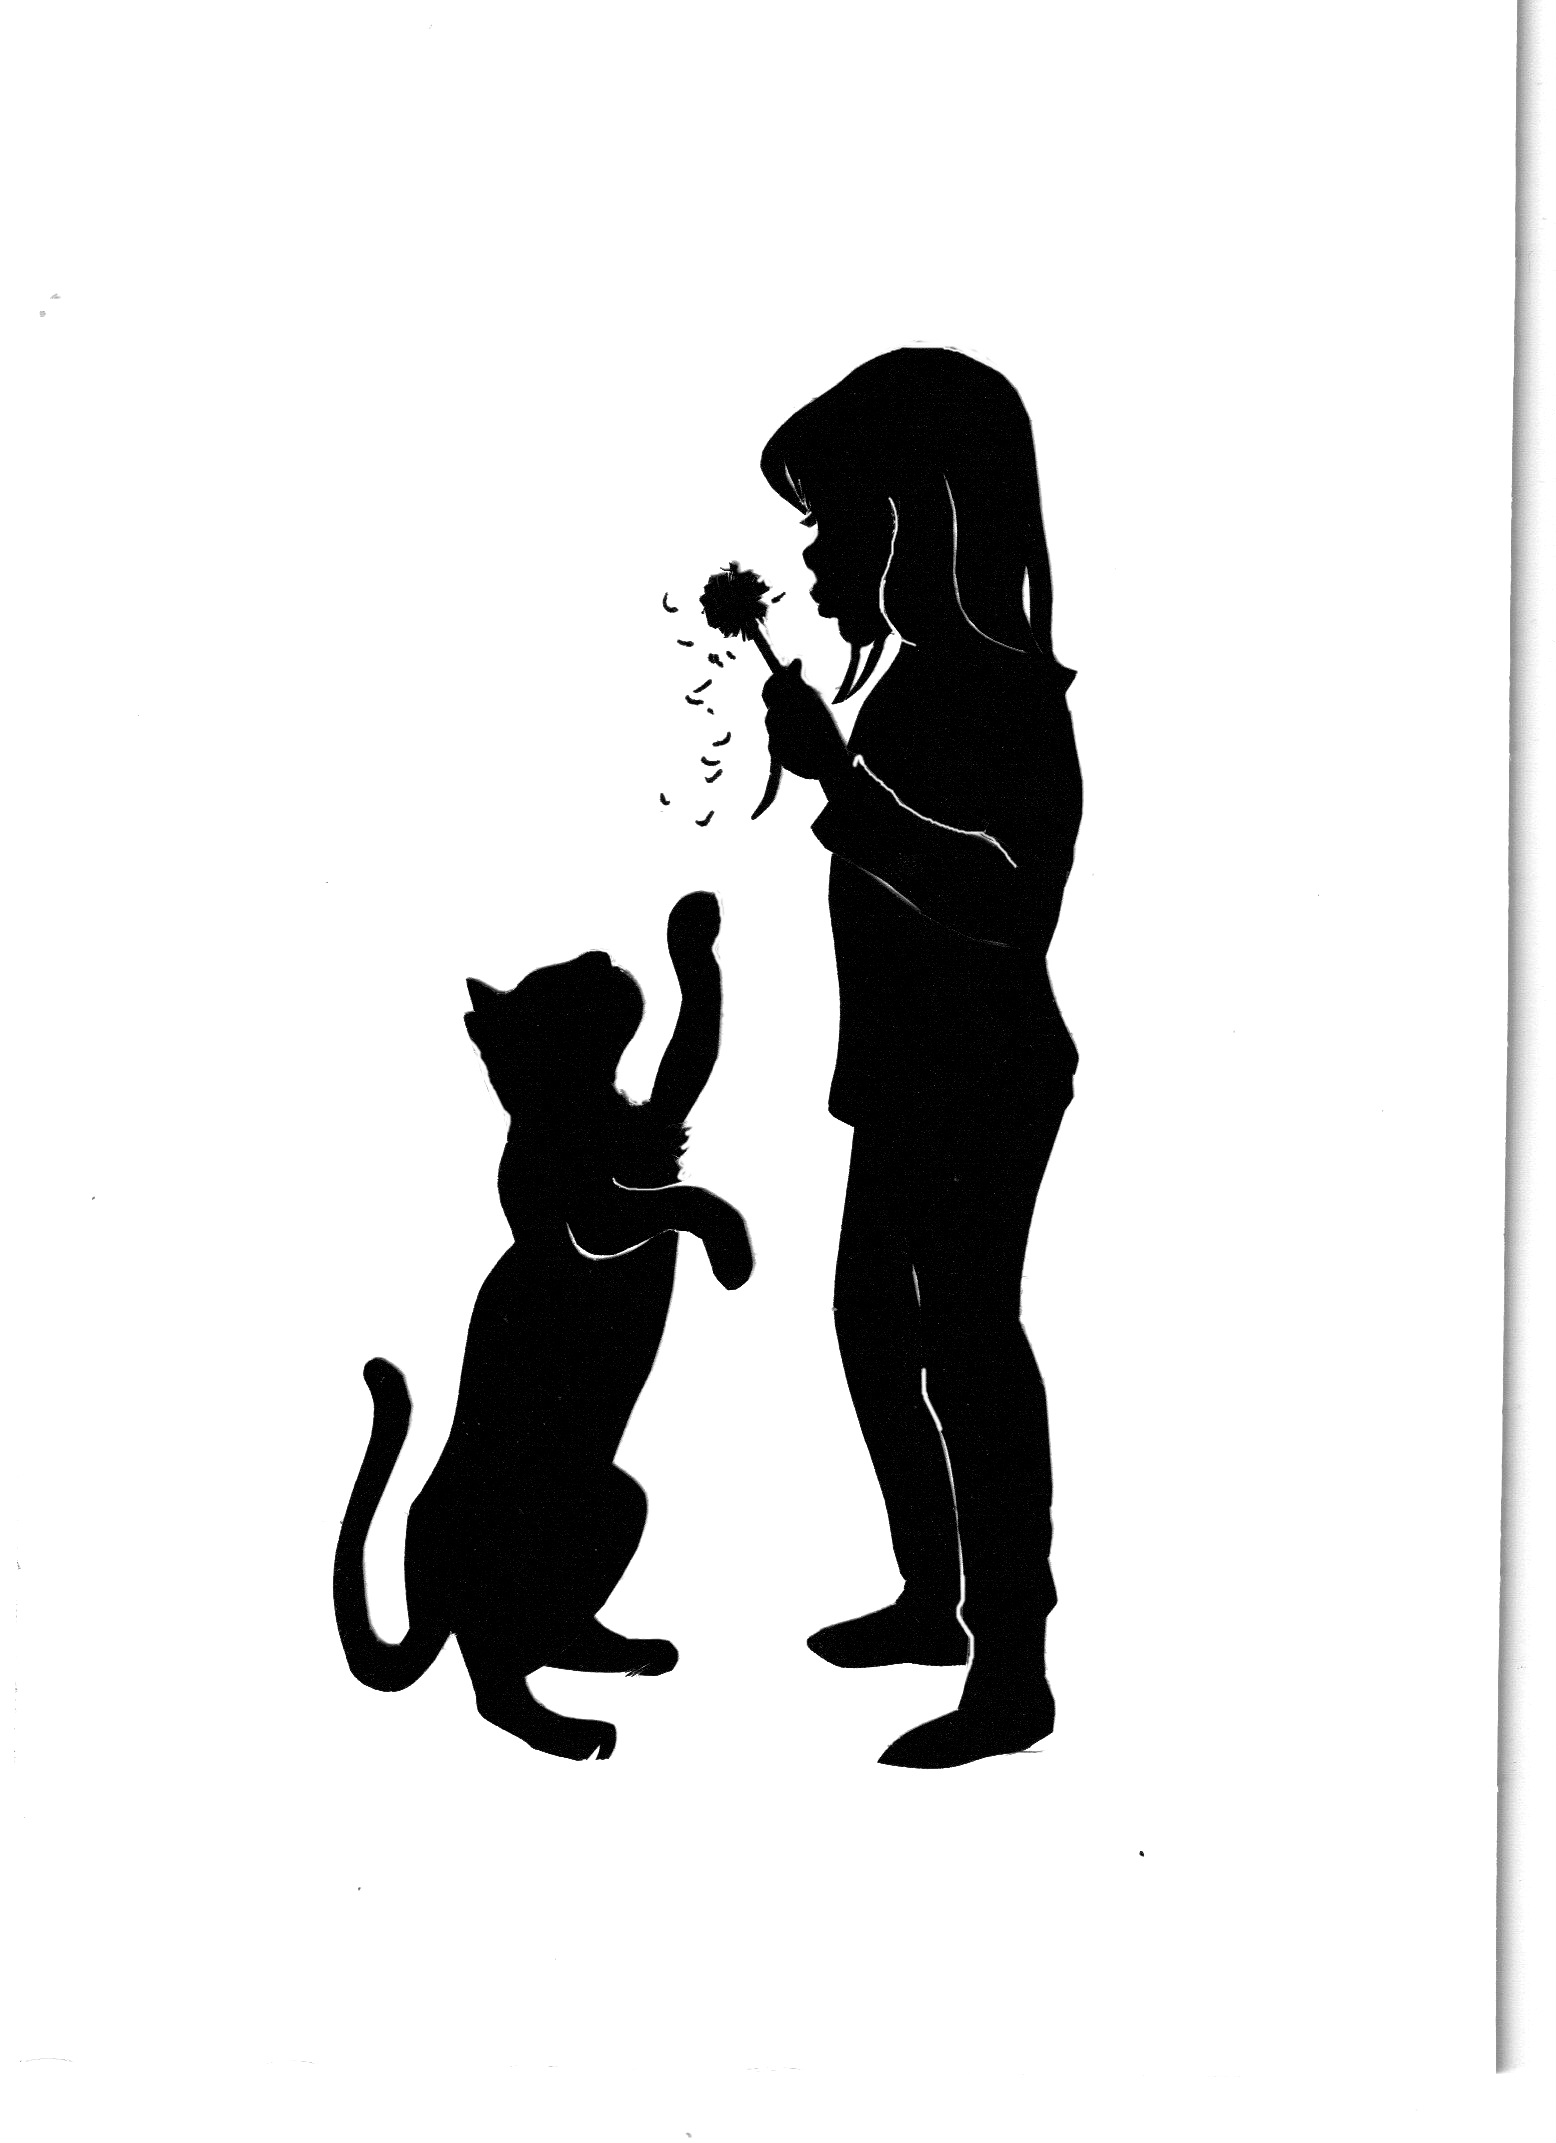 Dandelion Girl and Playful Cat Silhouette